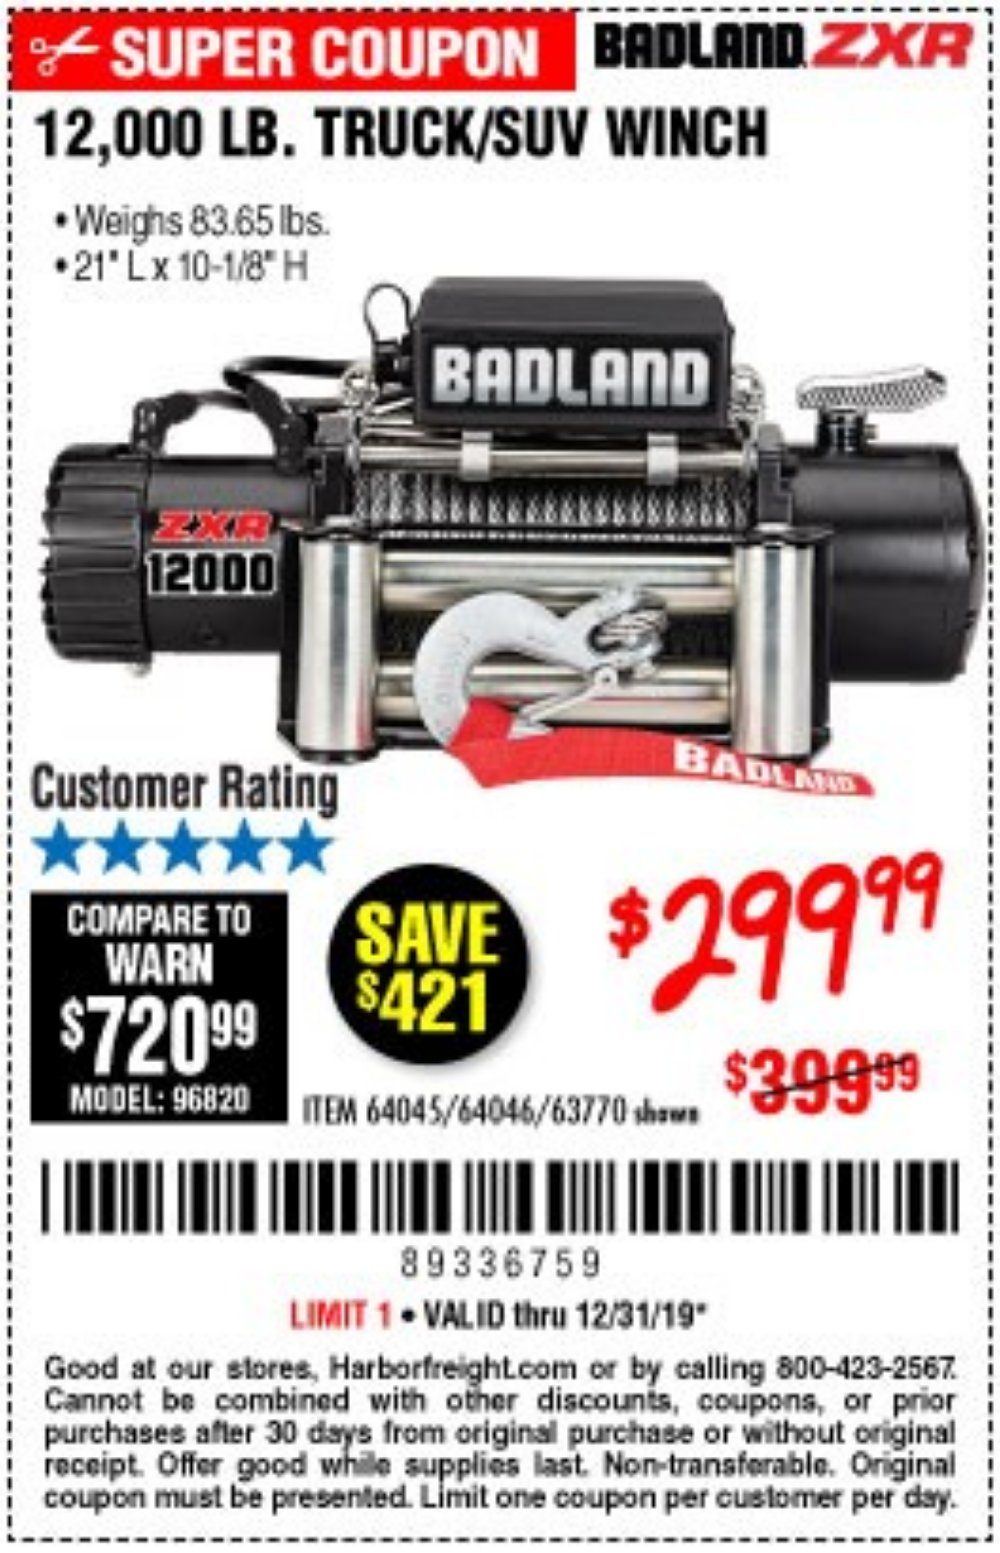 Harbor Freight Coupon, HF Coupons - 12,000 Lb. Truck/suv Winch